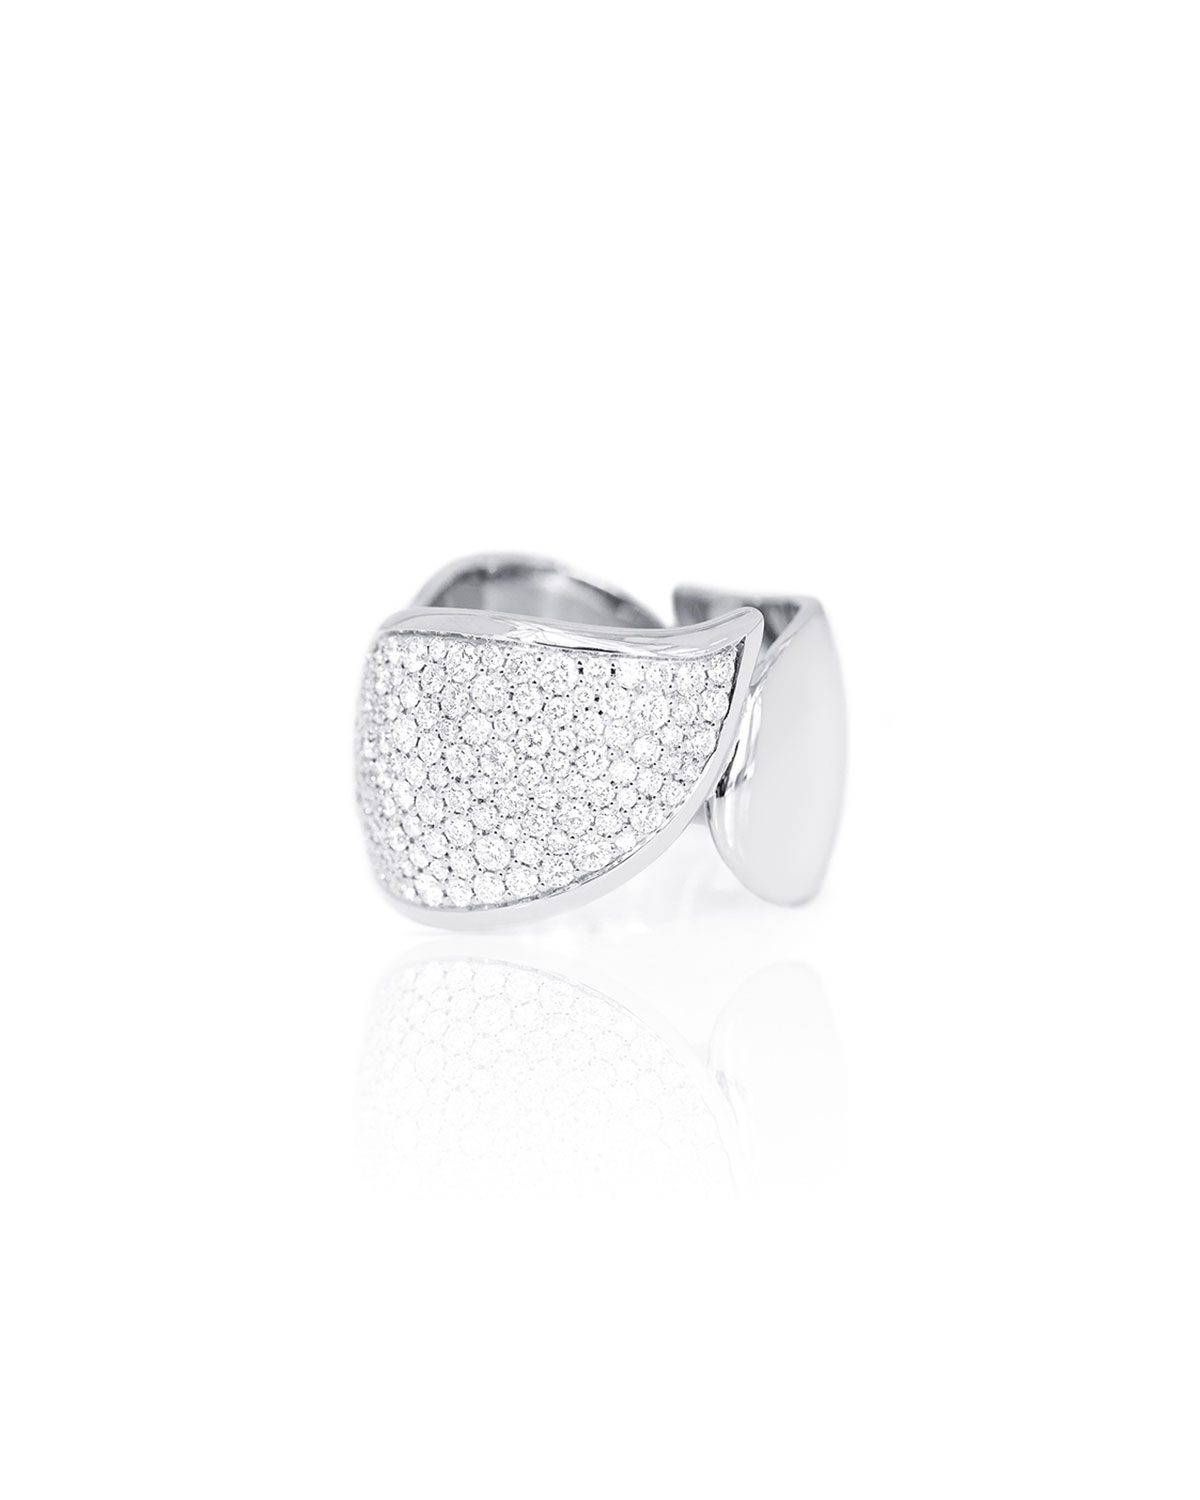 Signature Wave ring from Tamara Comolli. Polished 18-karat white gold hardware. Three drop motifs with diamond pav. Brilliant-cut F/VS white diamonds. 1.05 total diamond carat weight. Approx. 0.5\